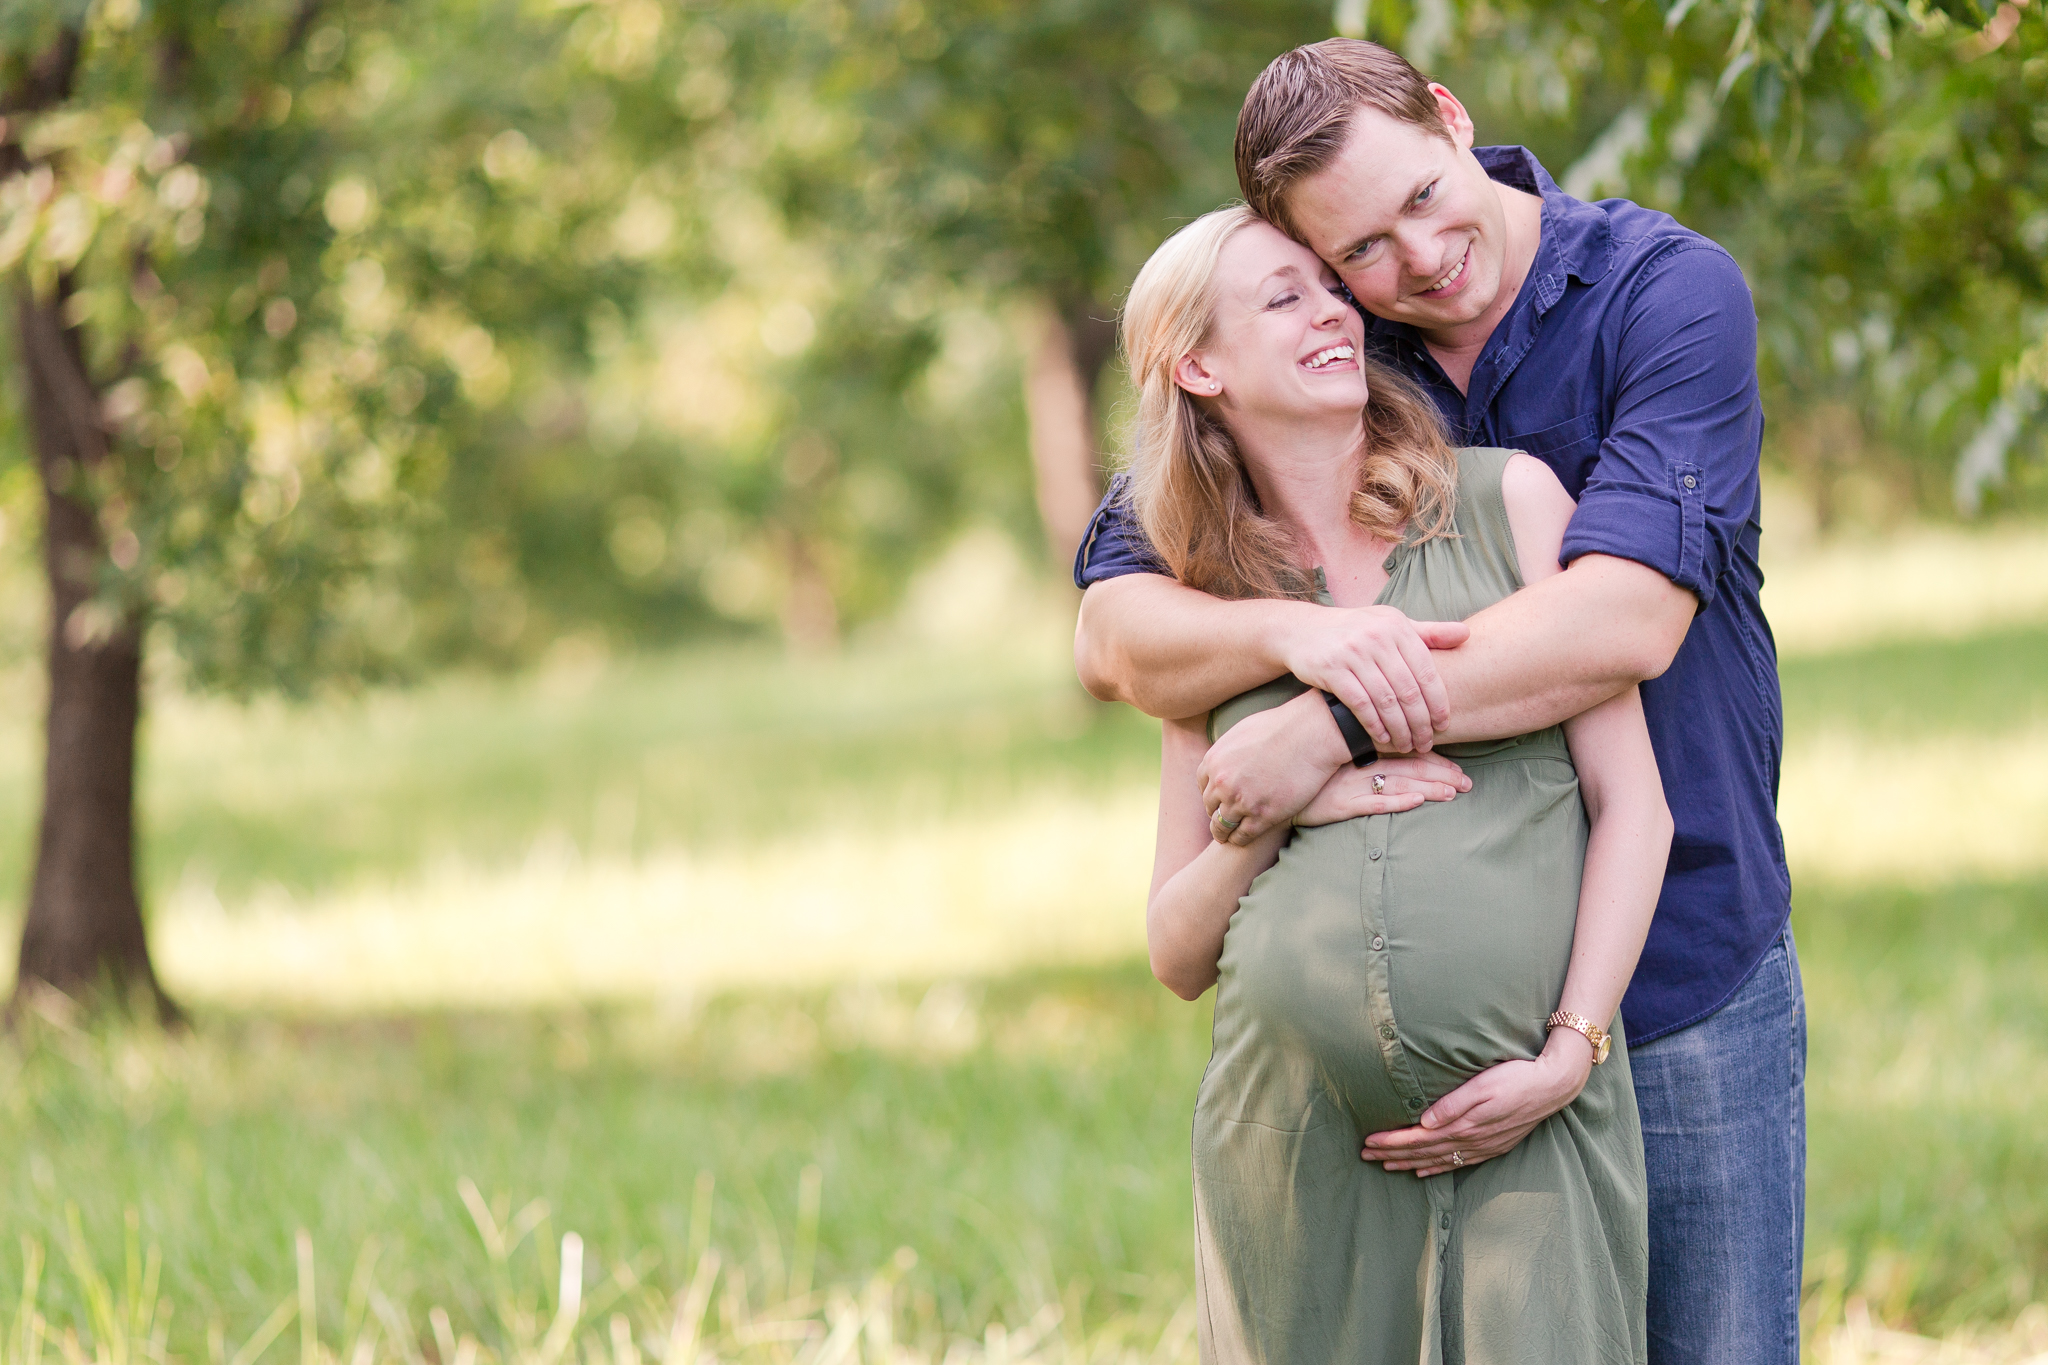 20170813-outdoor-maternity-photo-session-greenville-sc-9.jpg